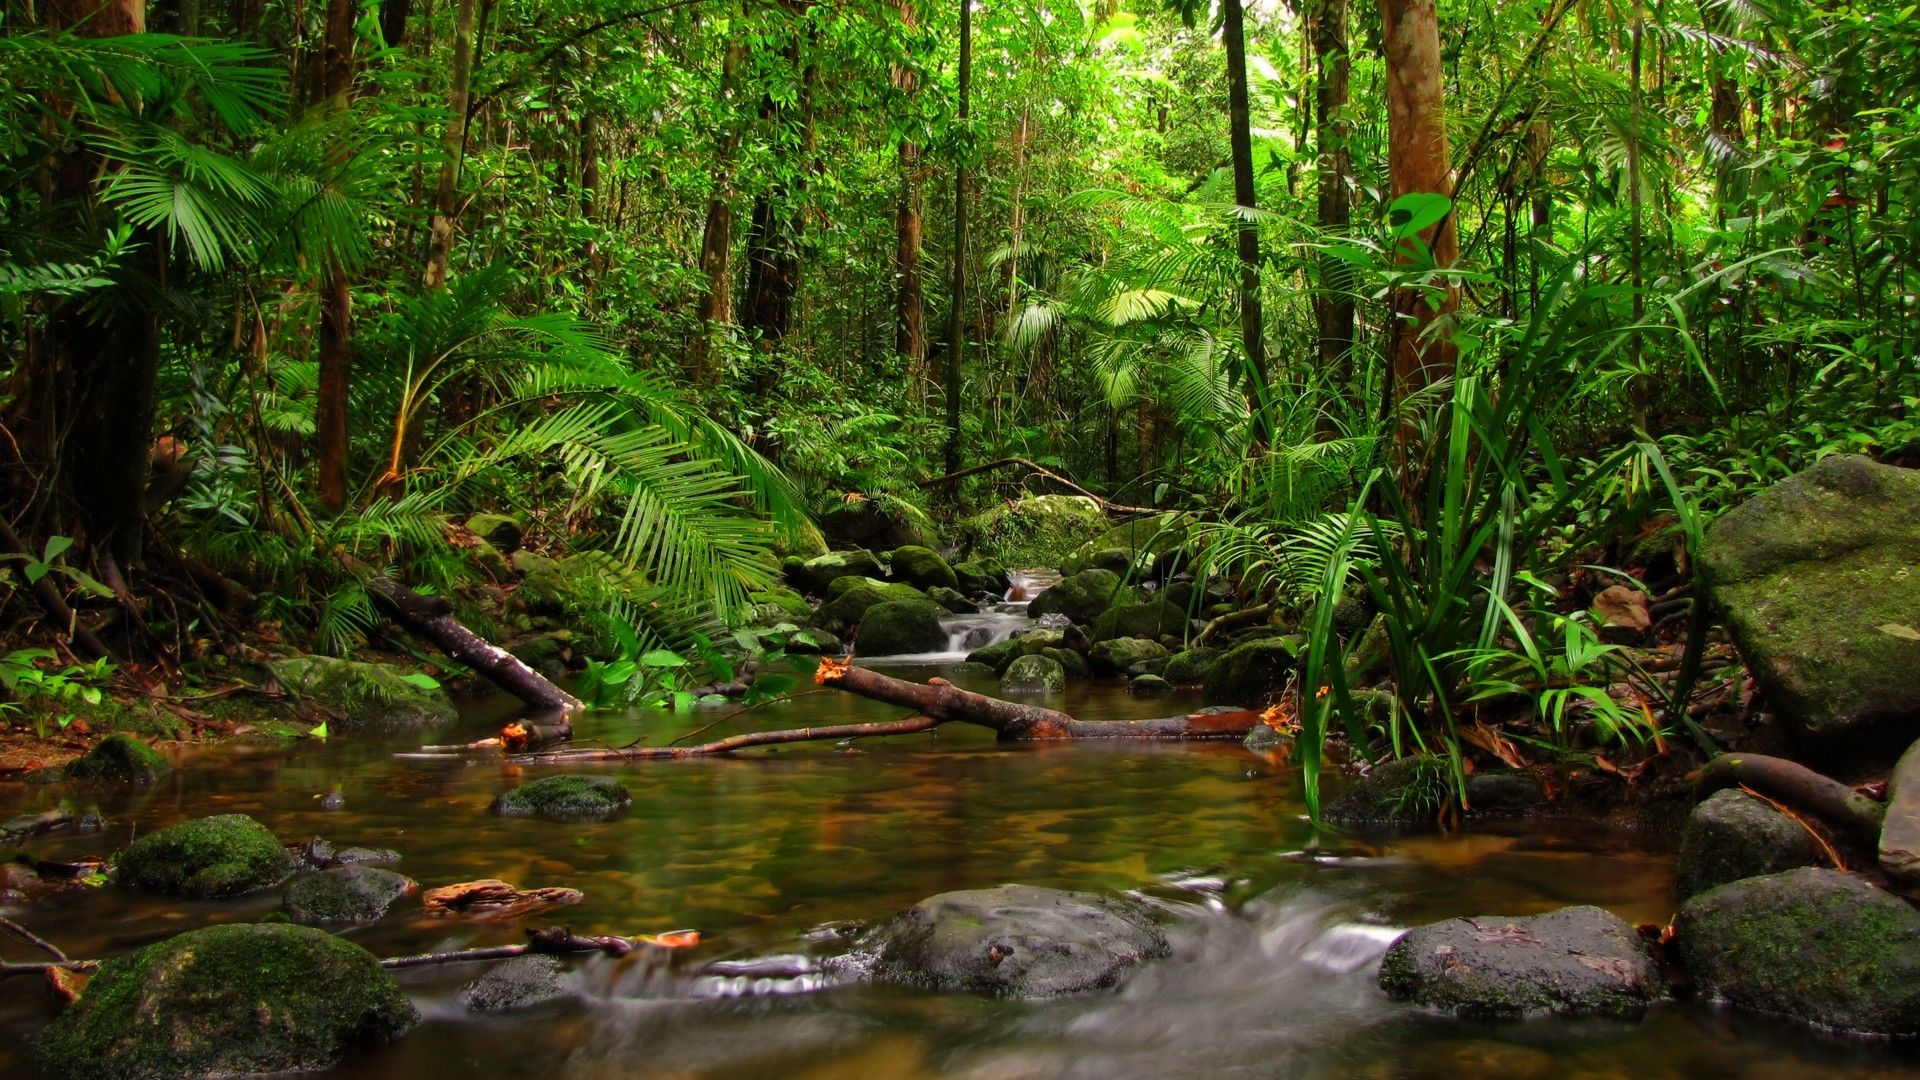 River Jungle Forest Nature HD 1920x1080 | Desktop Wallpaper in 2019 | Rainforest pictures ...